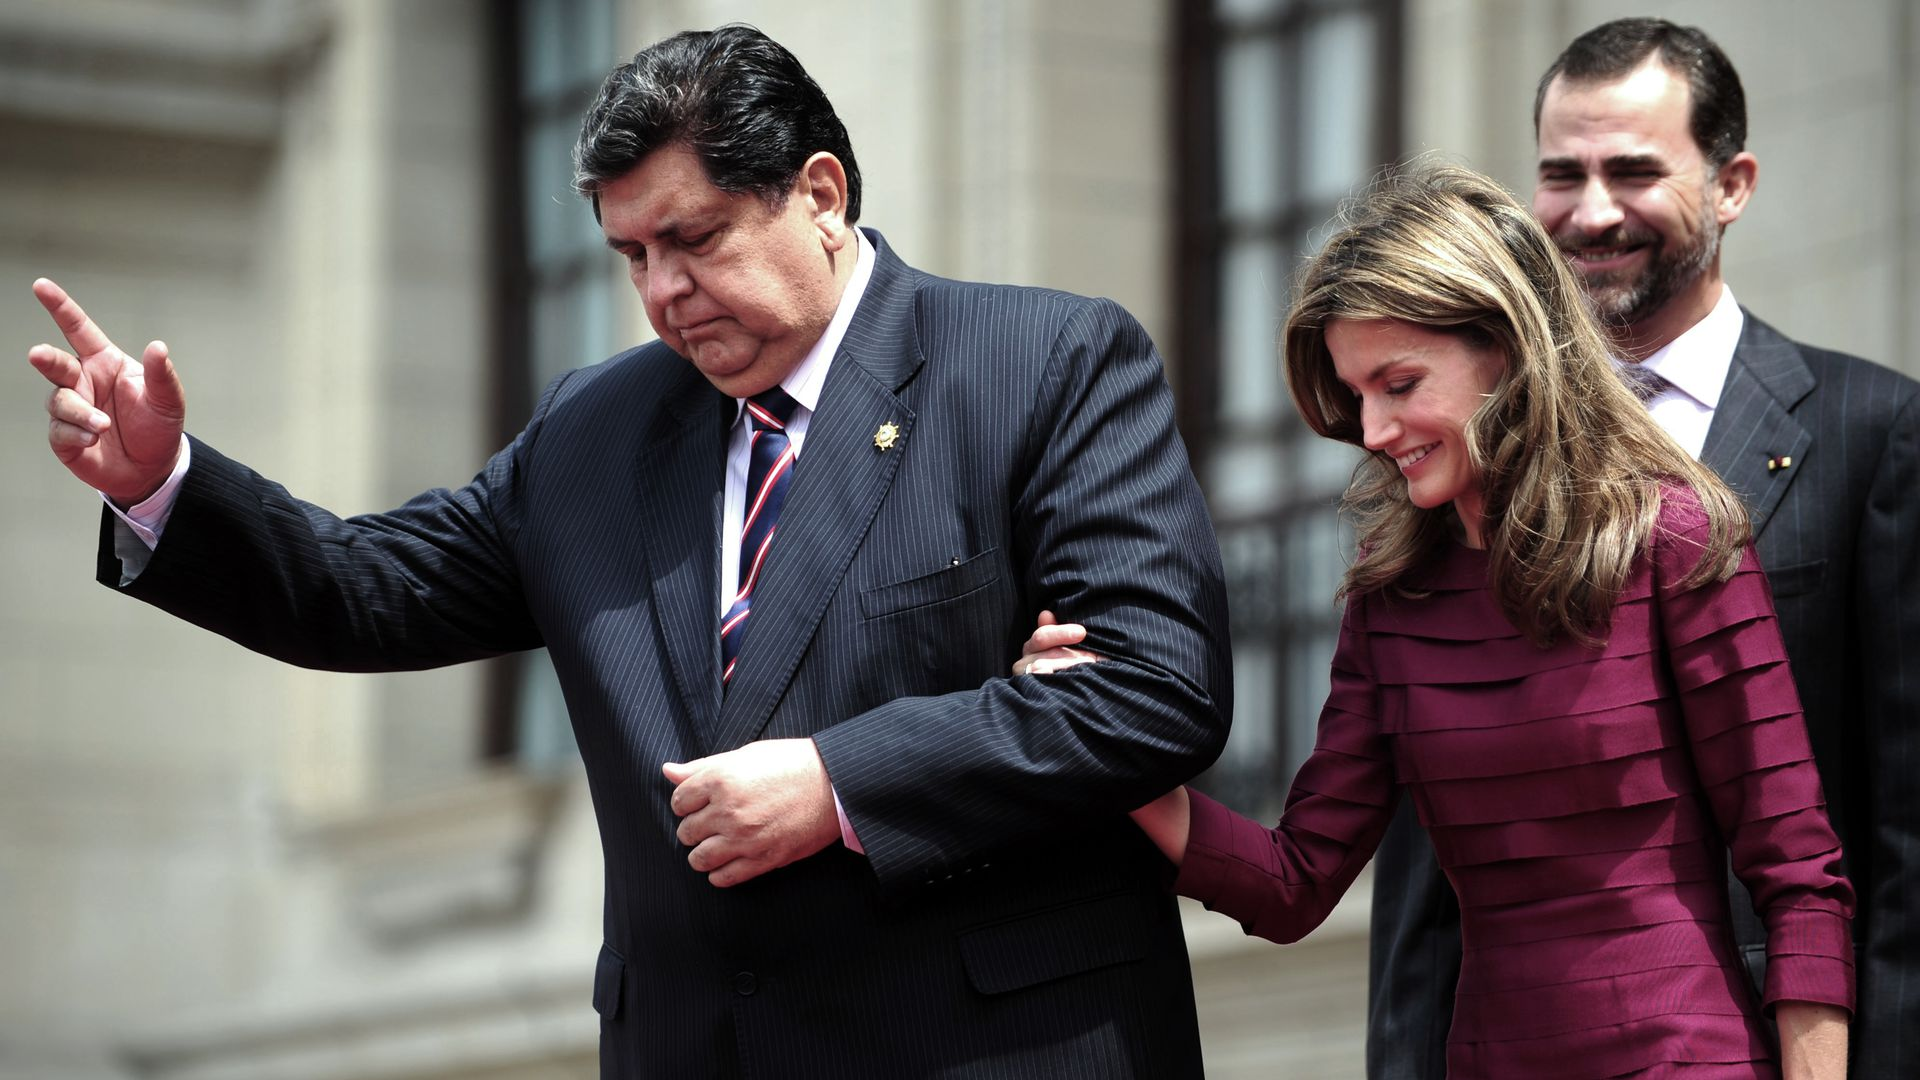 Former Peruvian president, facing arrest, commits suicide